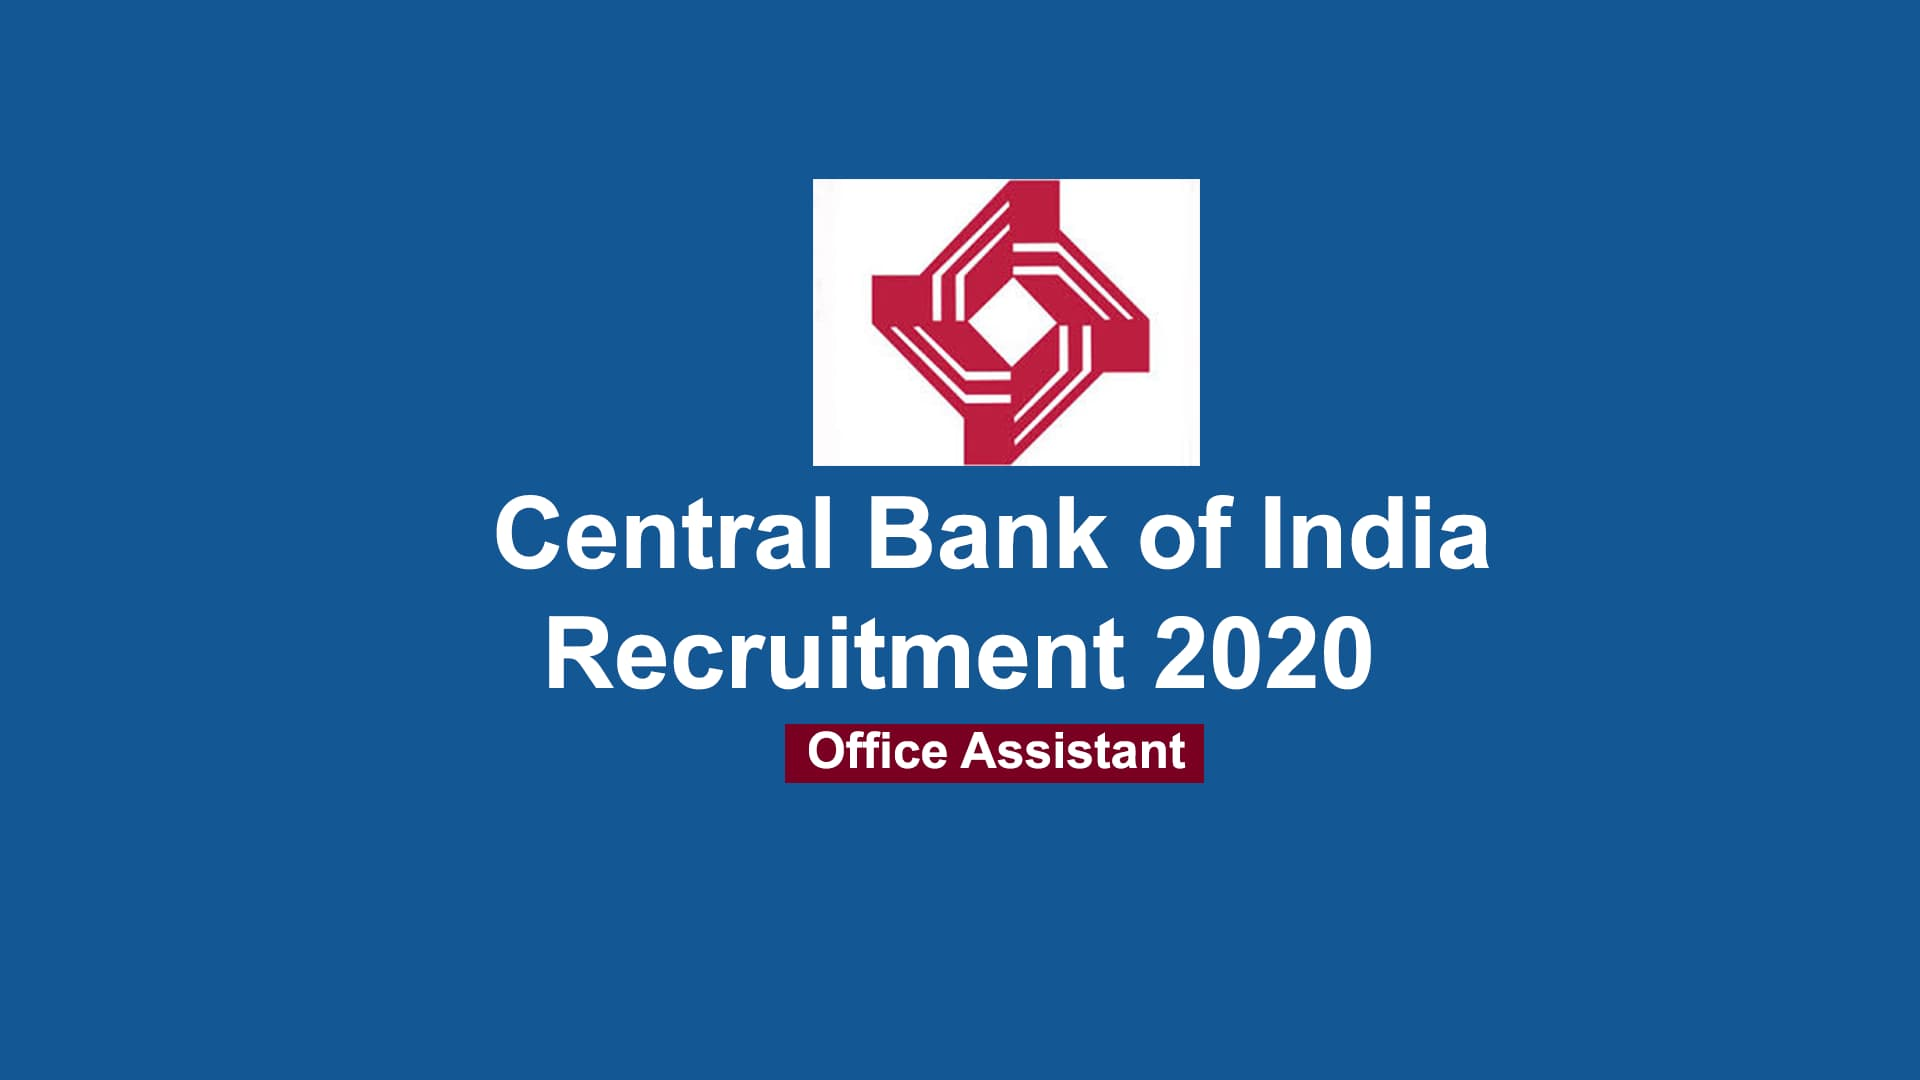 Central Bank of India Office Recruitment 2020